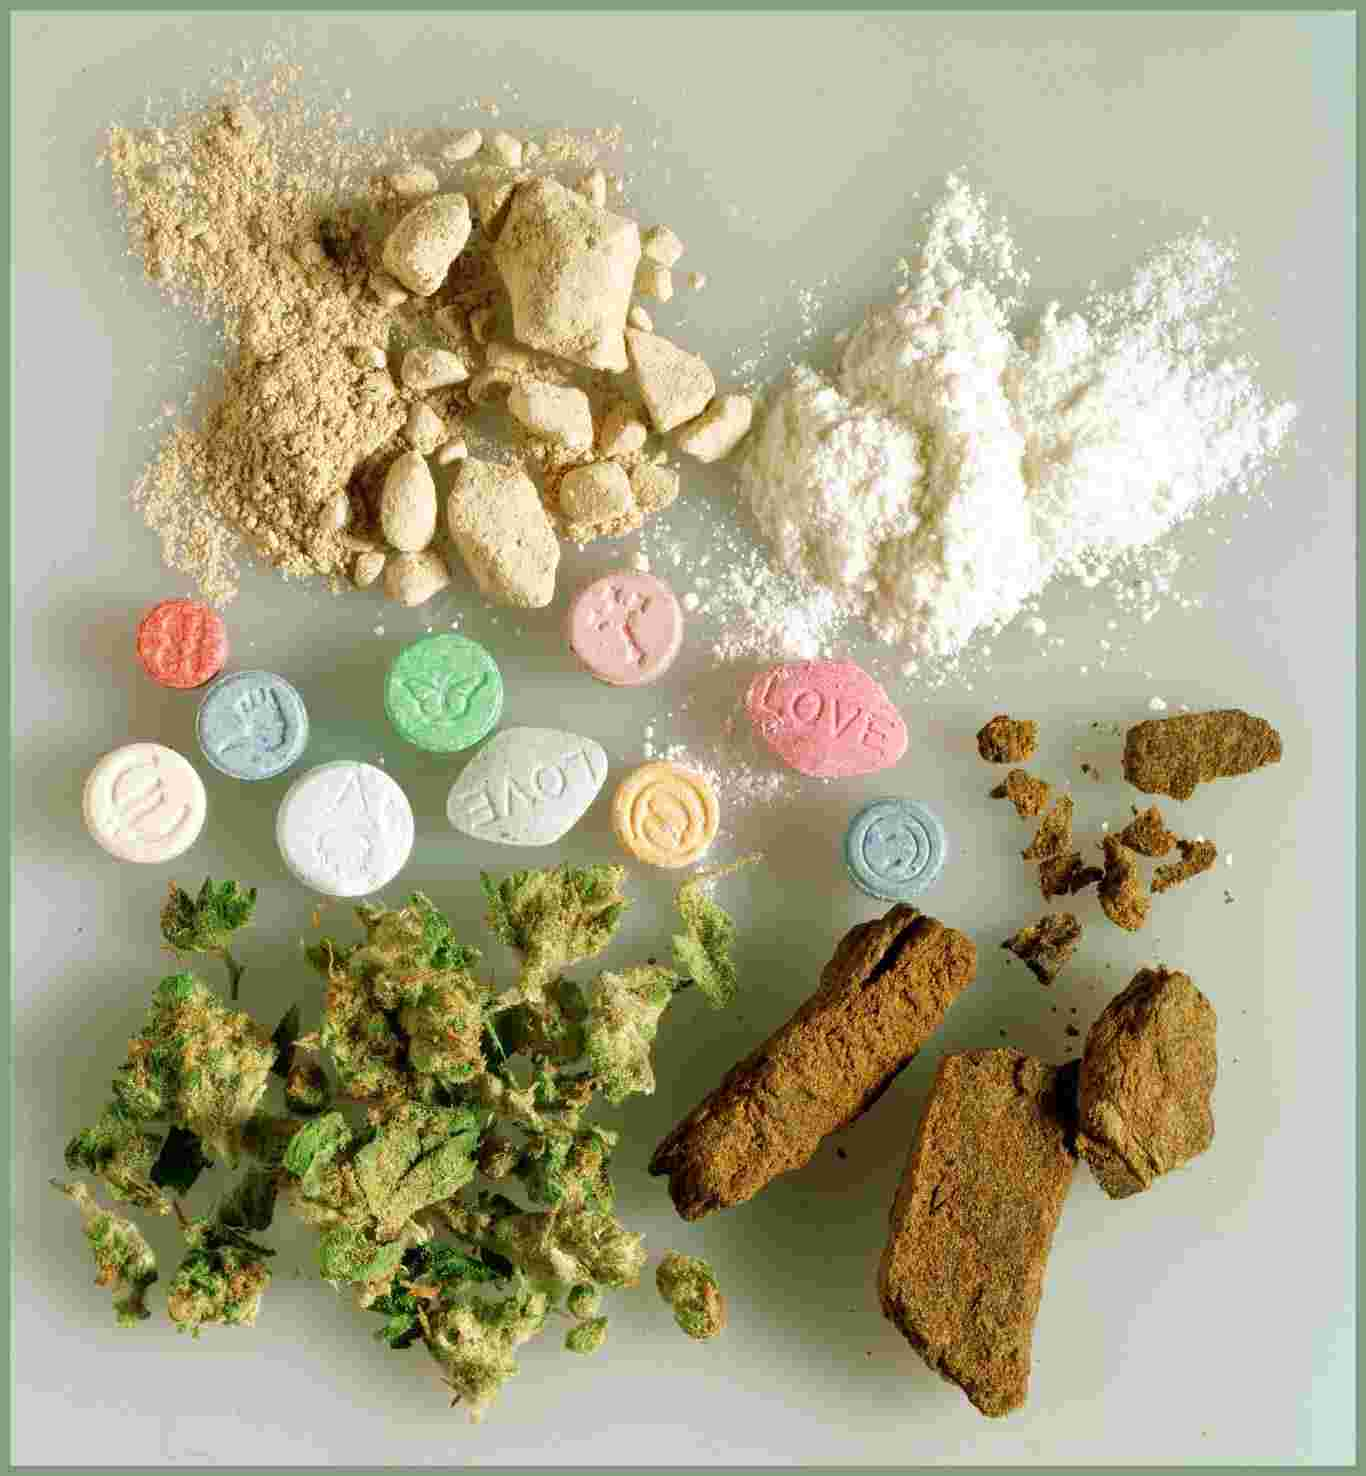 an analysis of the use of marijuana an illegal drug Drugs of abuse testing is the detection of one or more illegal and/or prescribed substances in the urine, blood, saliva, hair, or sweat drug testing is used so that a person may receive appropriate medical treatment or be screened for or monitored for illegal drug use.